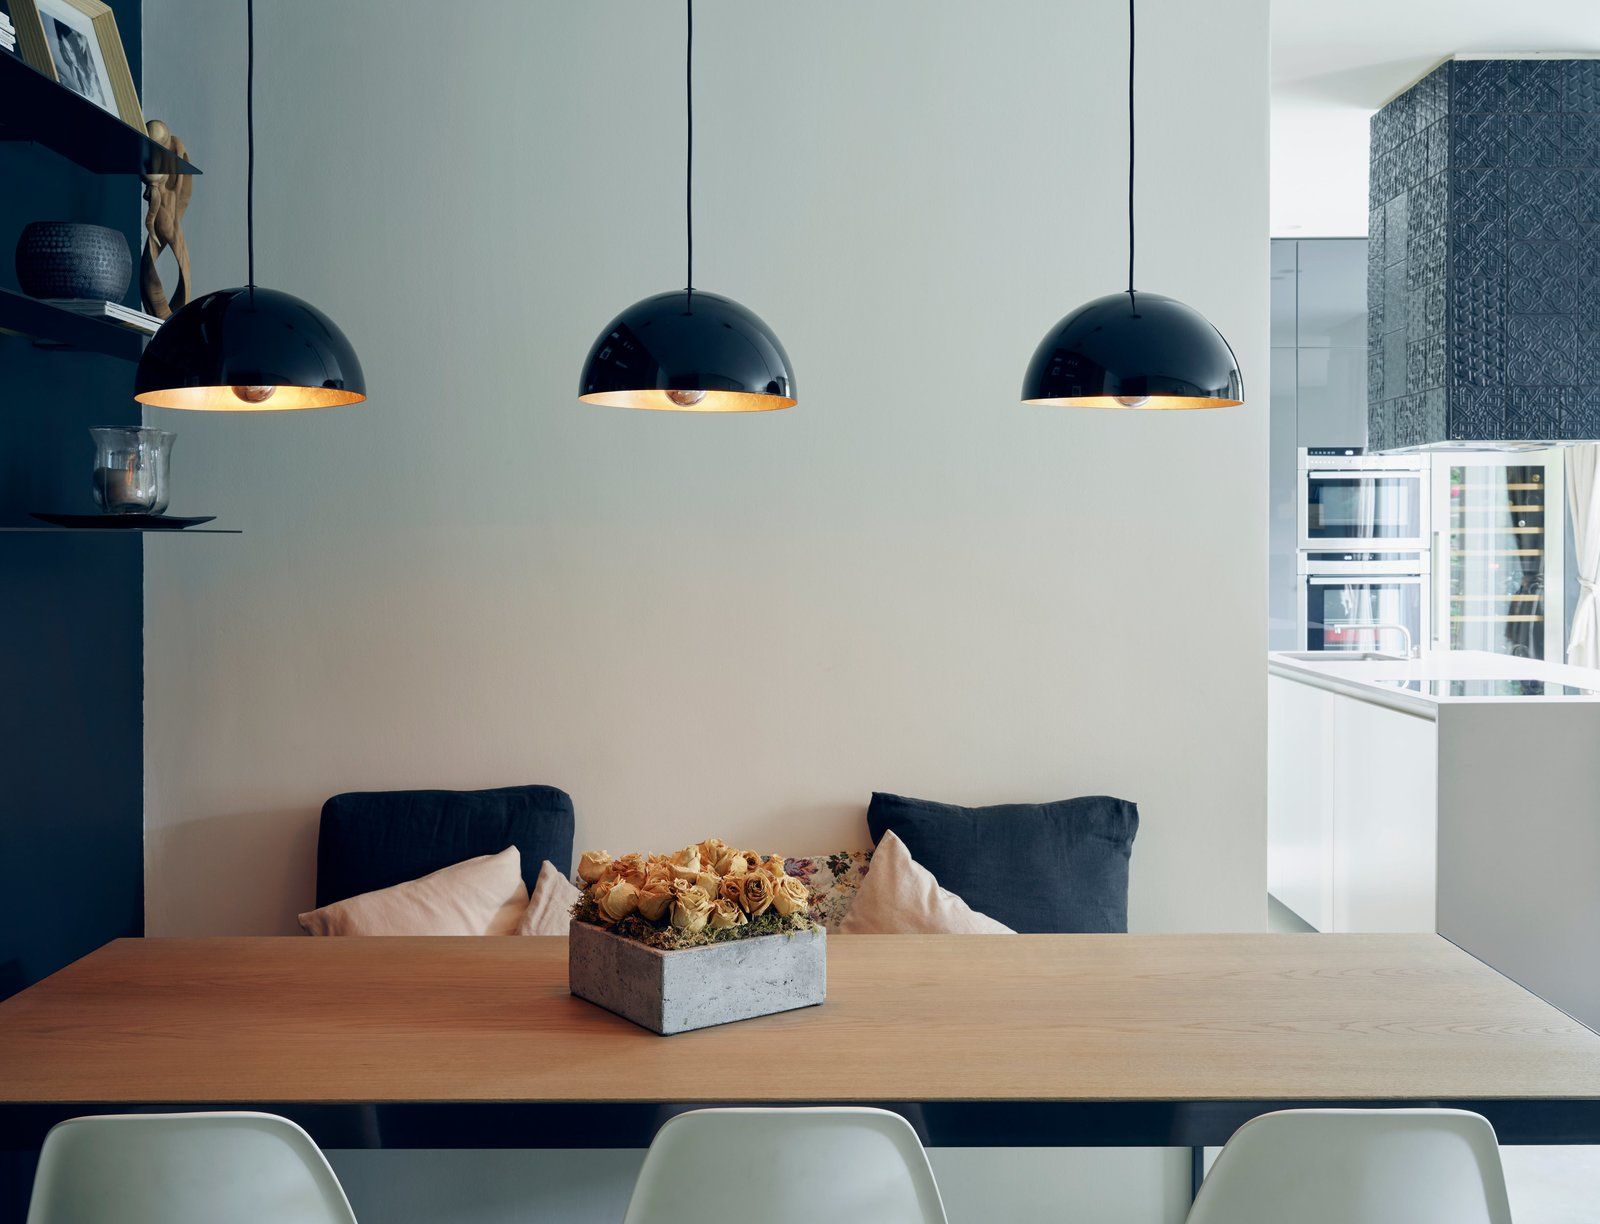 Three simple light fixtures with a pretty brass finish add a warm glow to a cool-toned room.  Photo 3 of 9 in 5 Main Ingredients For Cooking Up a Homey Kitchen Nook